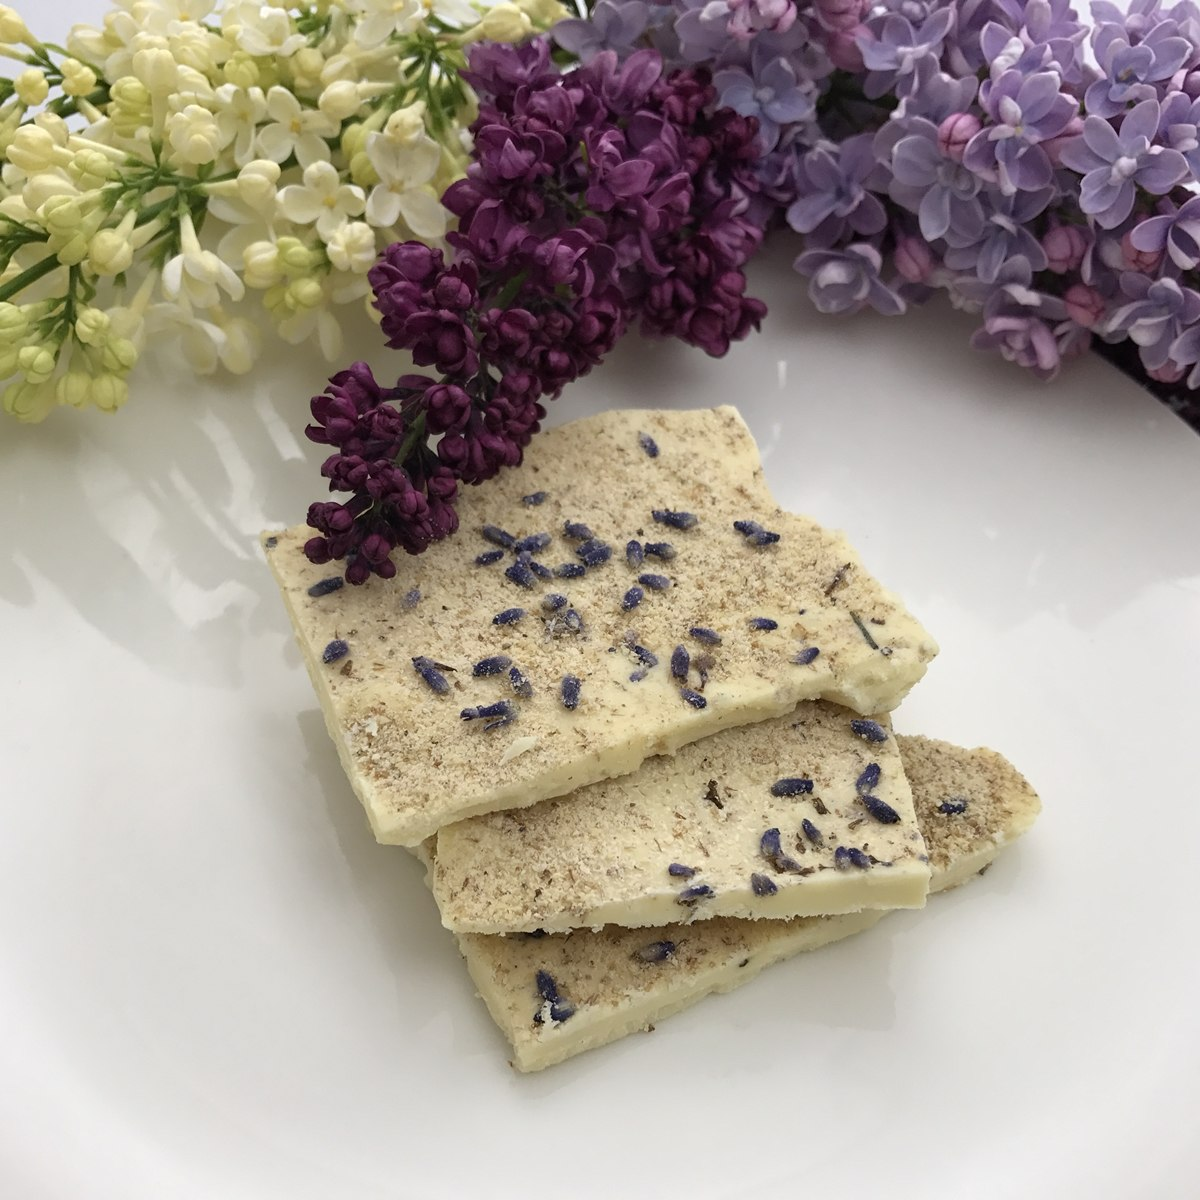 White chocolate with chufas and lavender